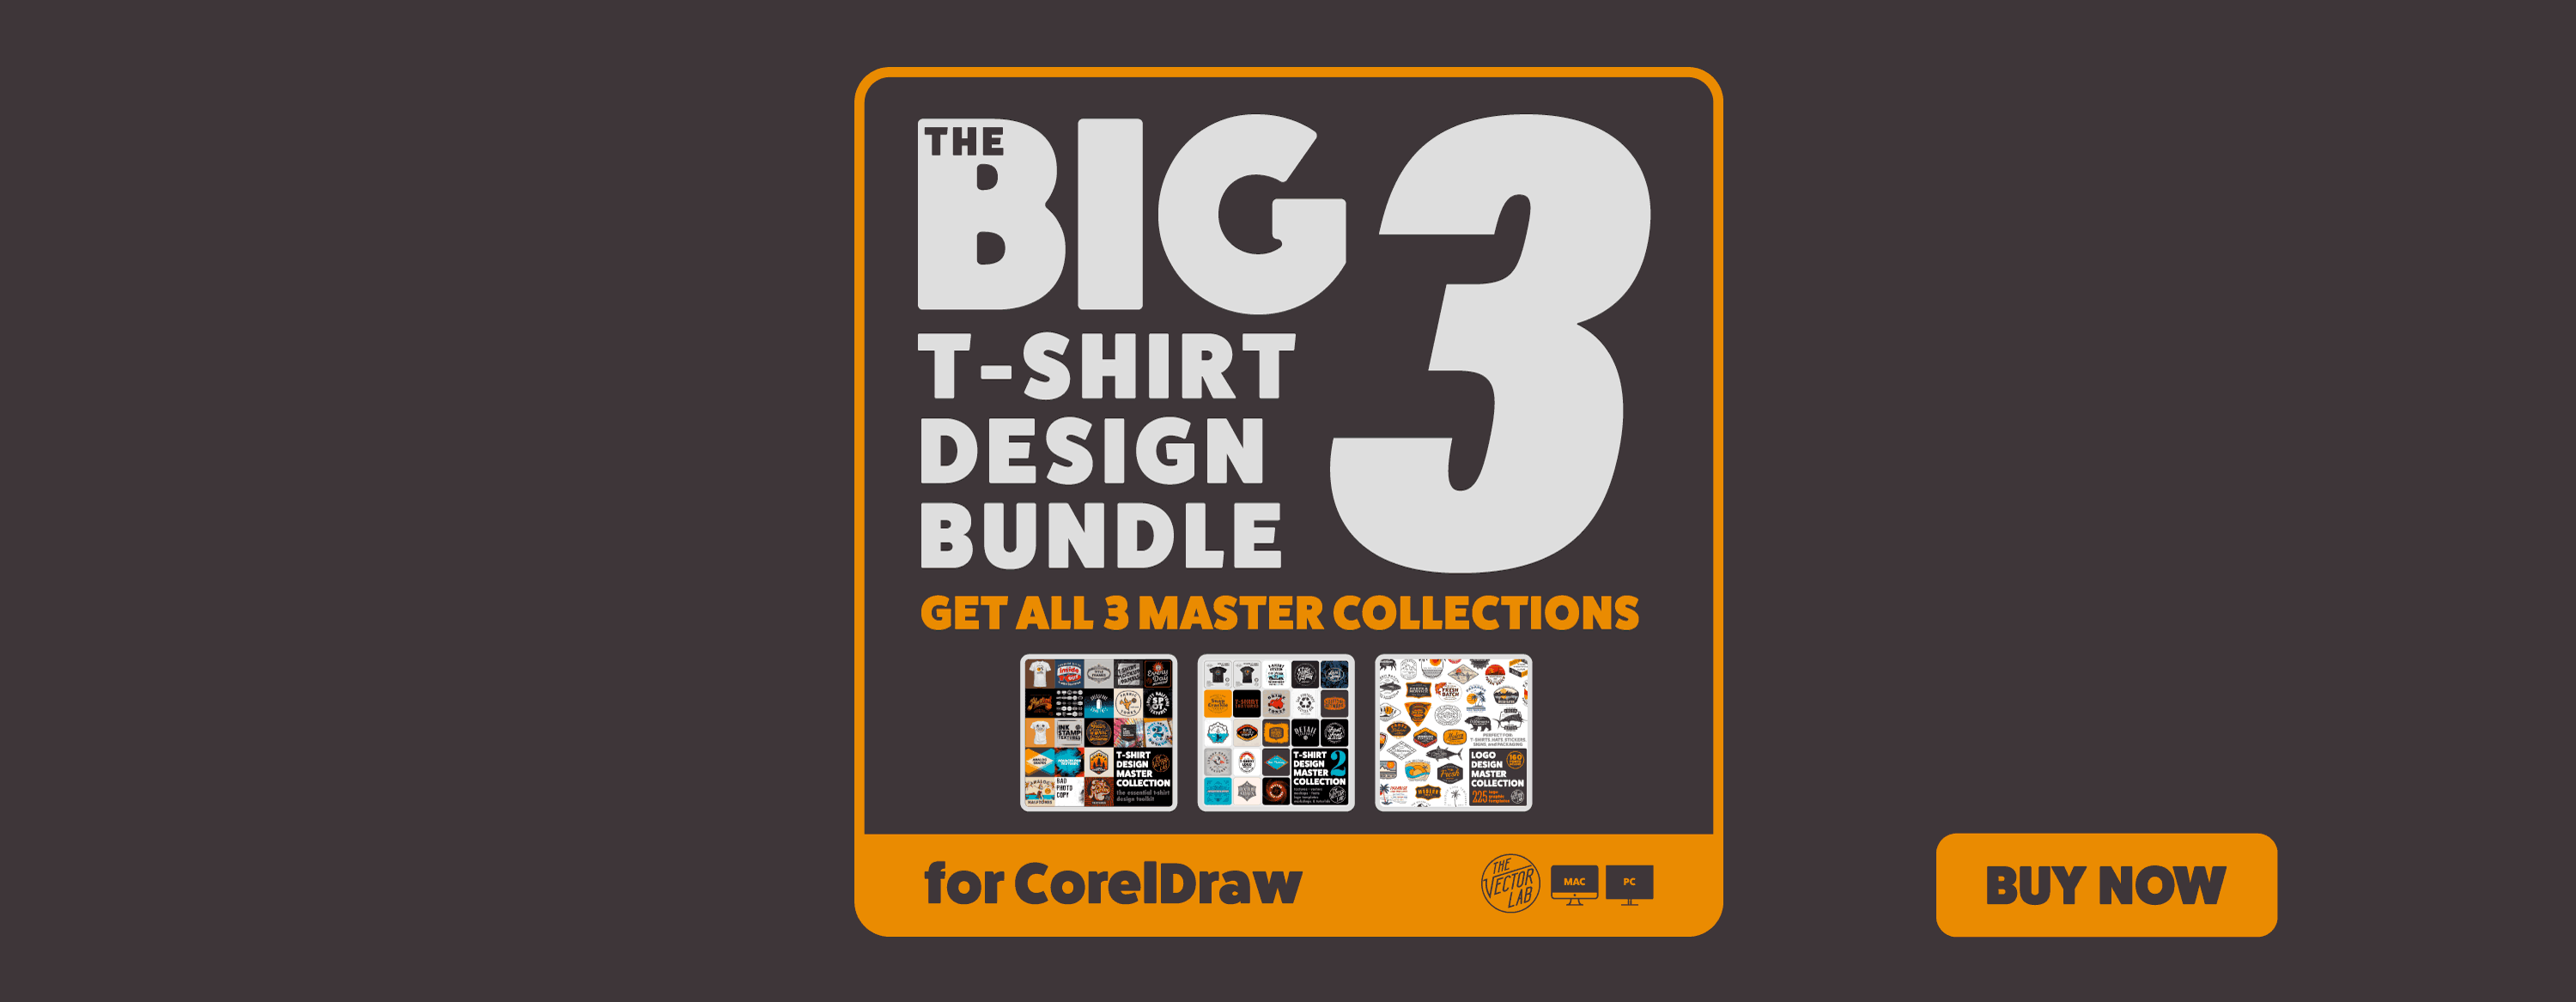 Get all 3 Master Collections: The Big 3 Bundle for CorelDraw